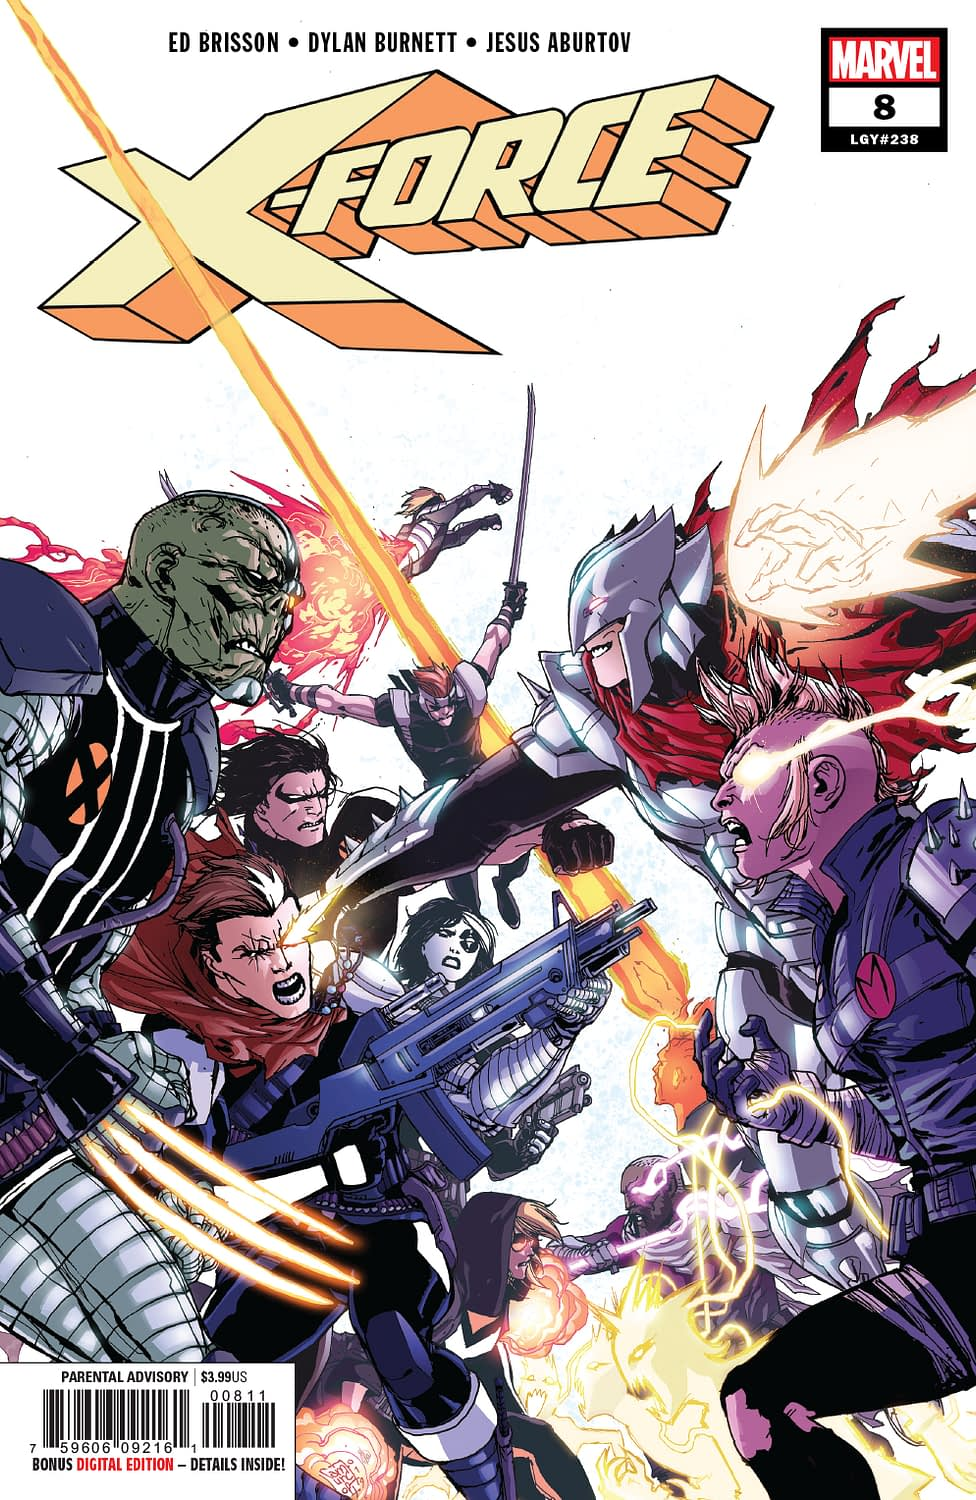 Maybe Cable Should Get That Checked Out? X-Force #8 Preview